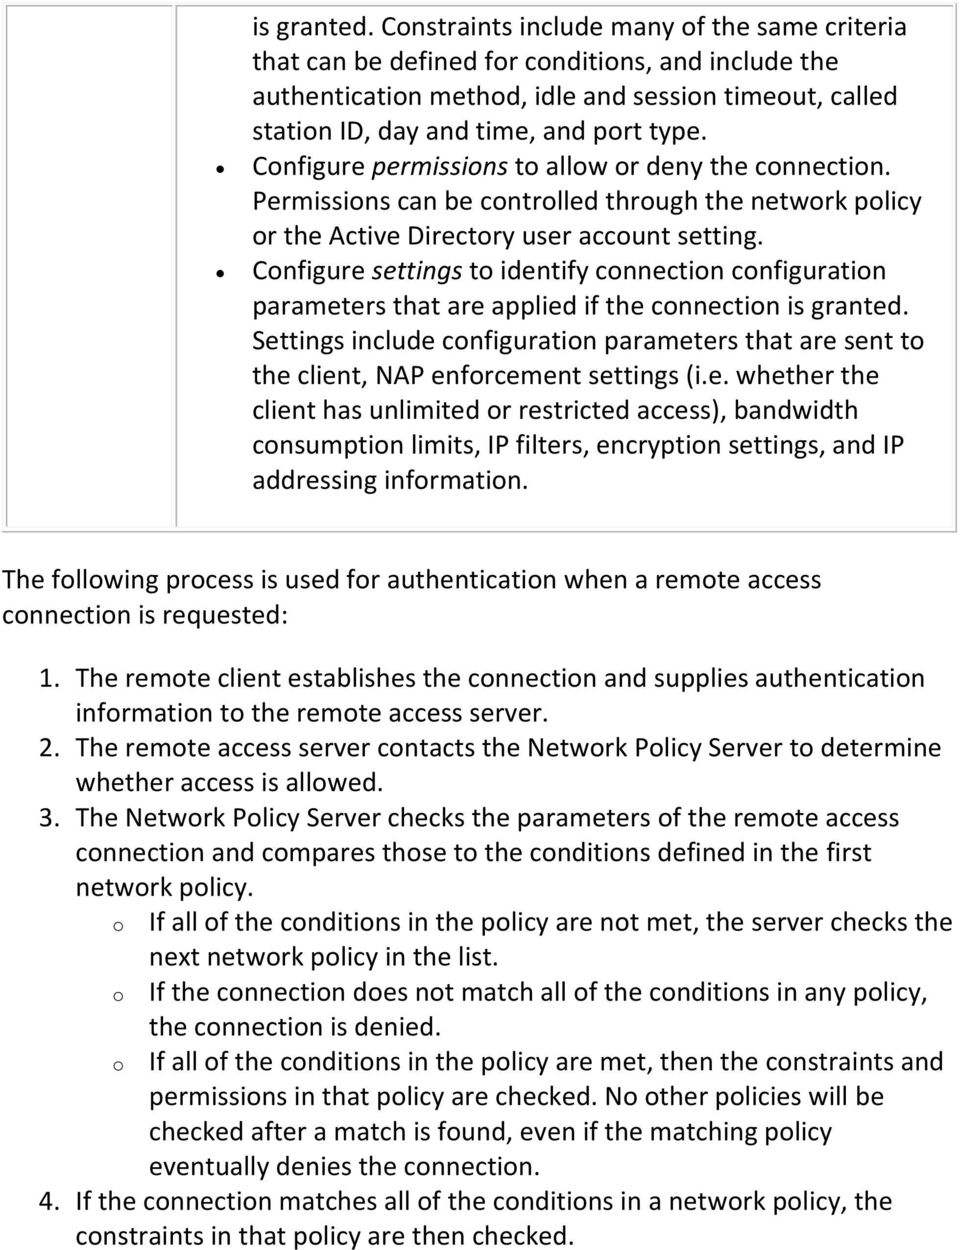 Configure permissions to allow or deny the connection. Permissions can be controlled through the network policy or the Active Directory user account setting.